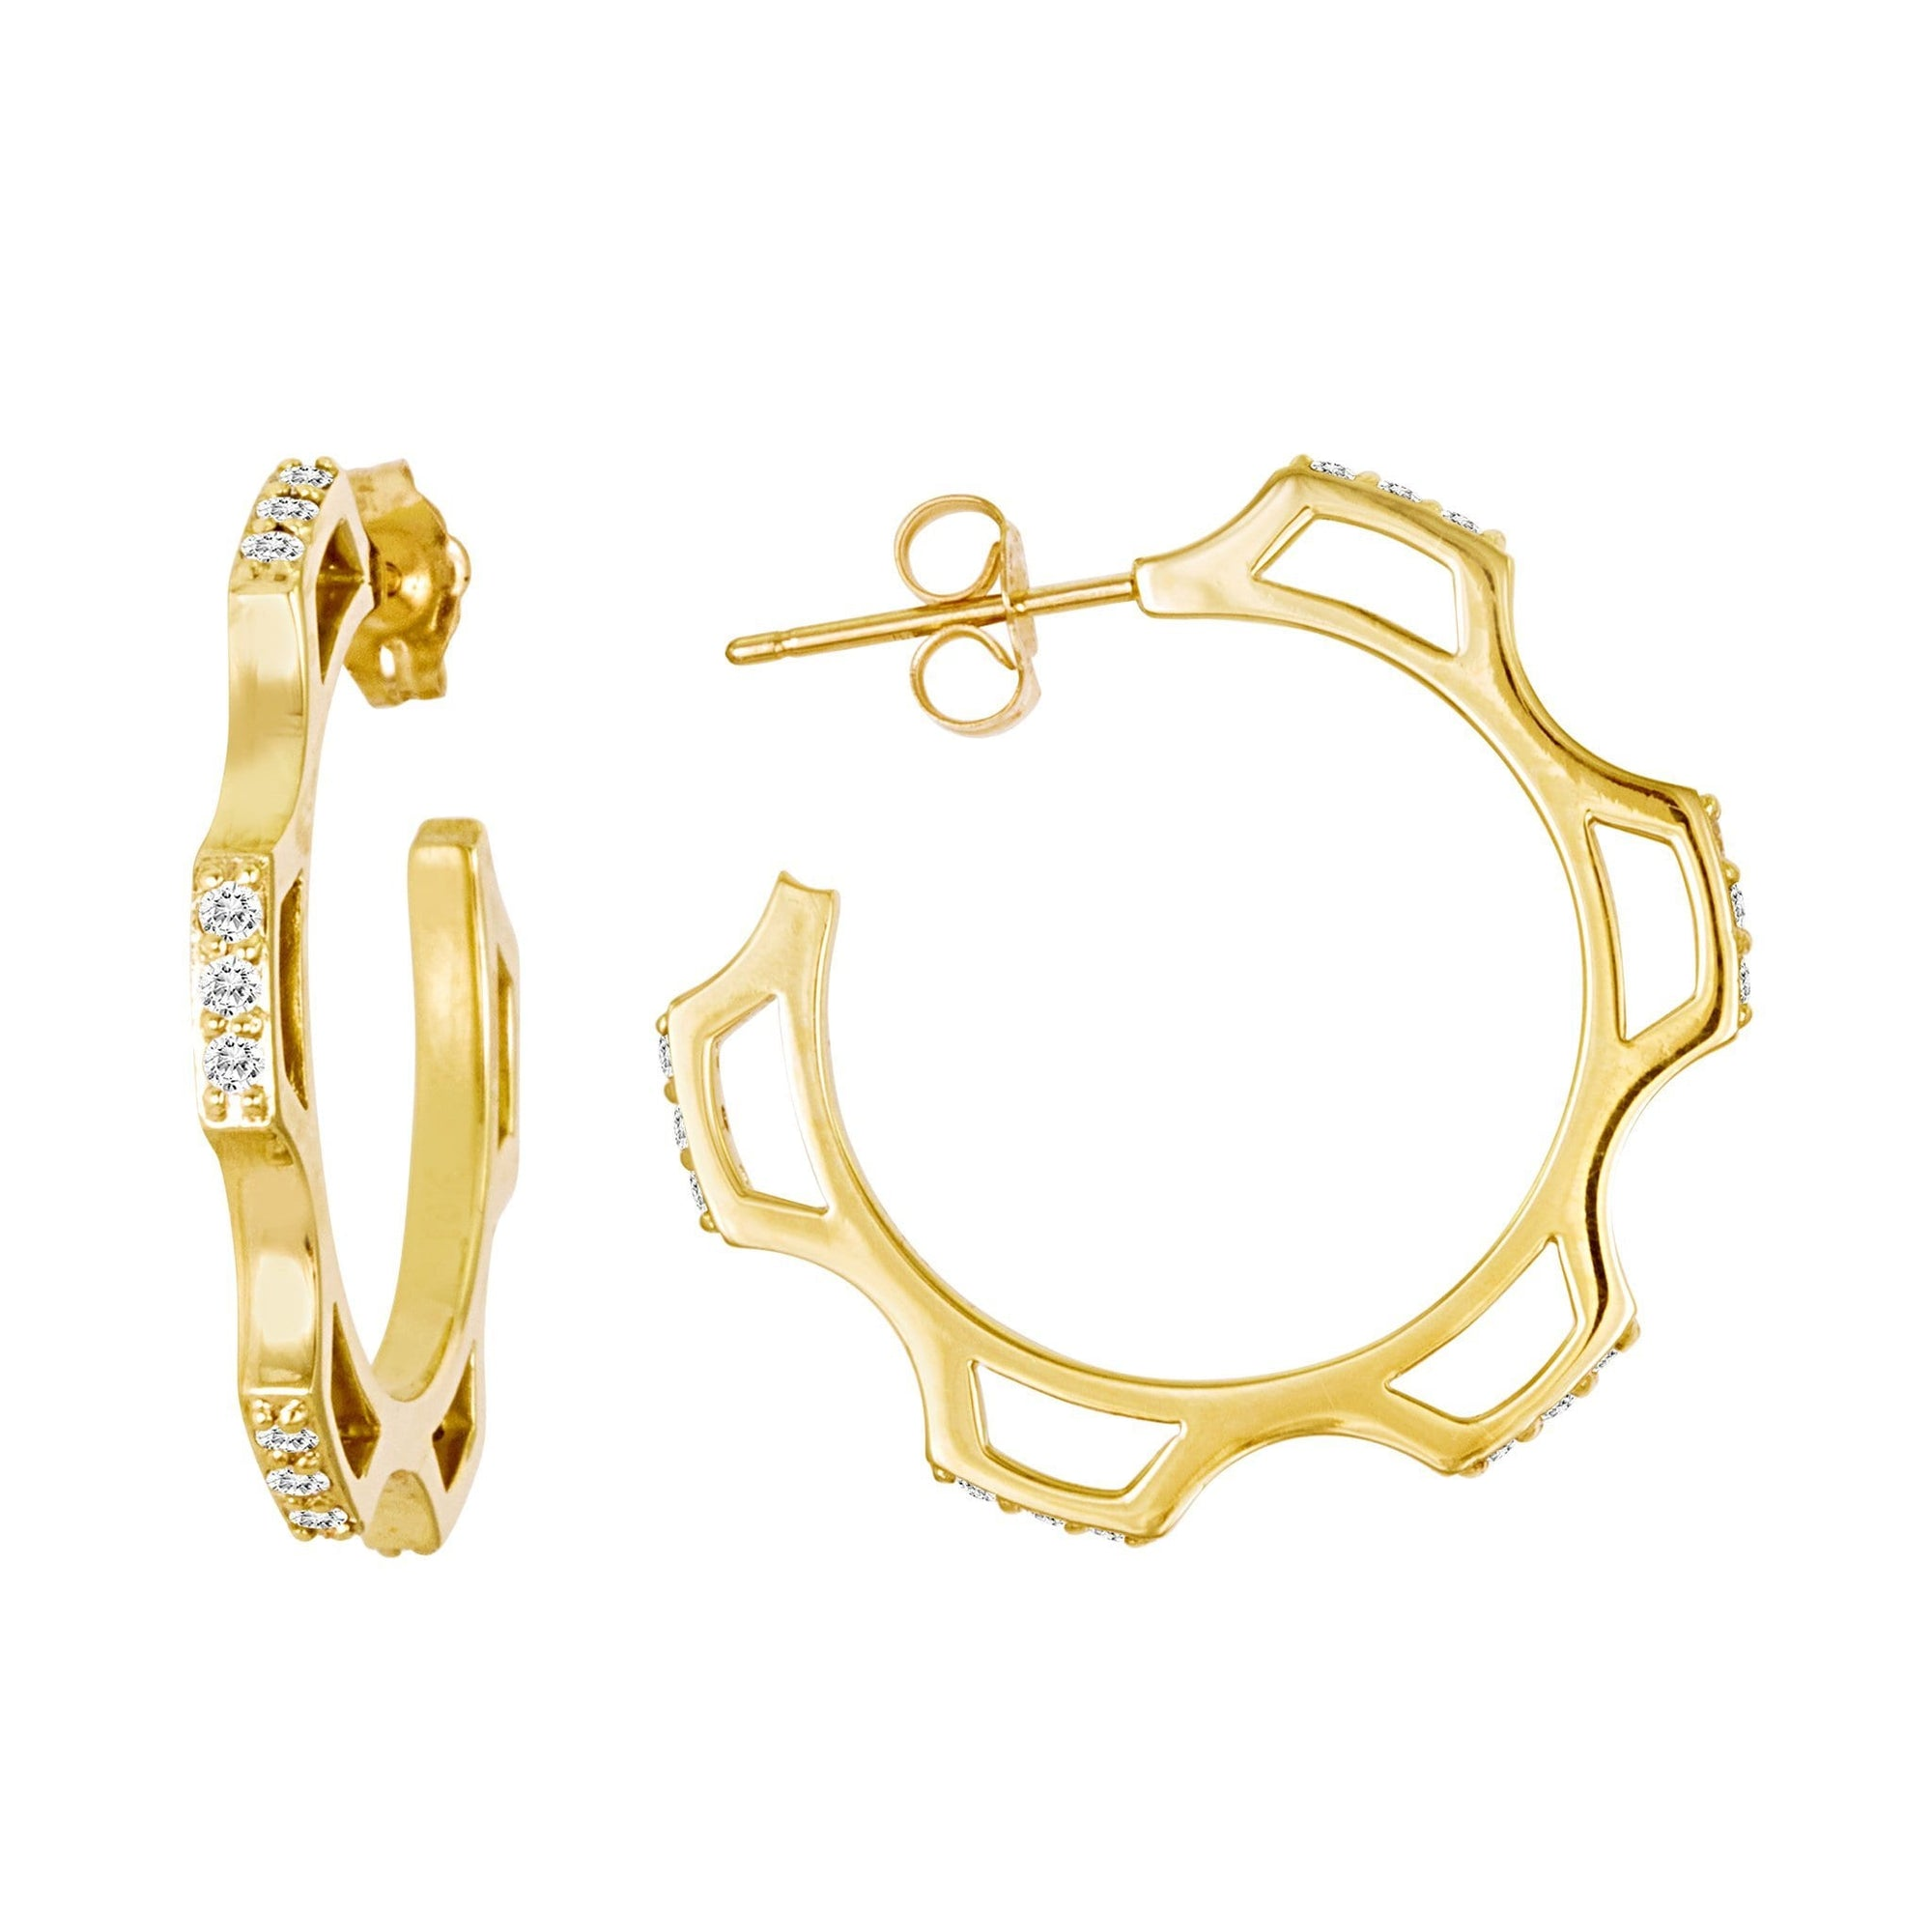 Gear Hoop Earrings: 18k Gold, Diamonds